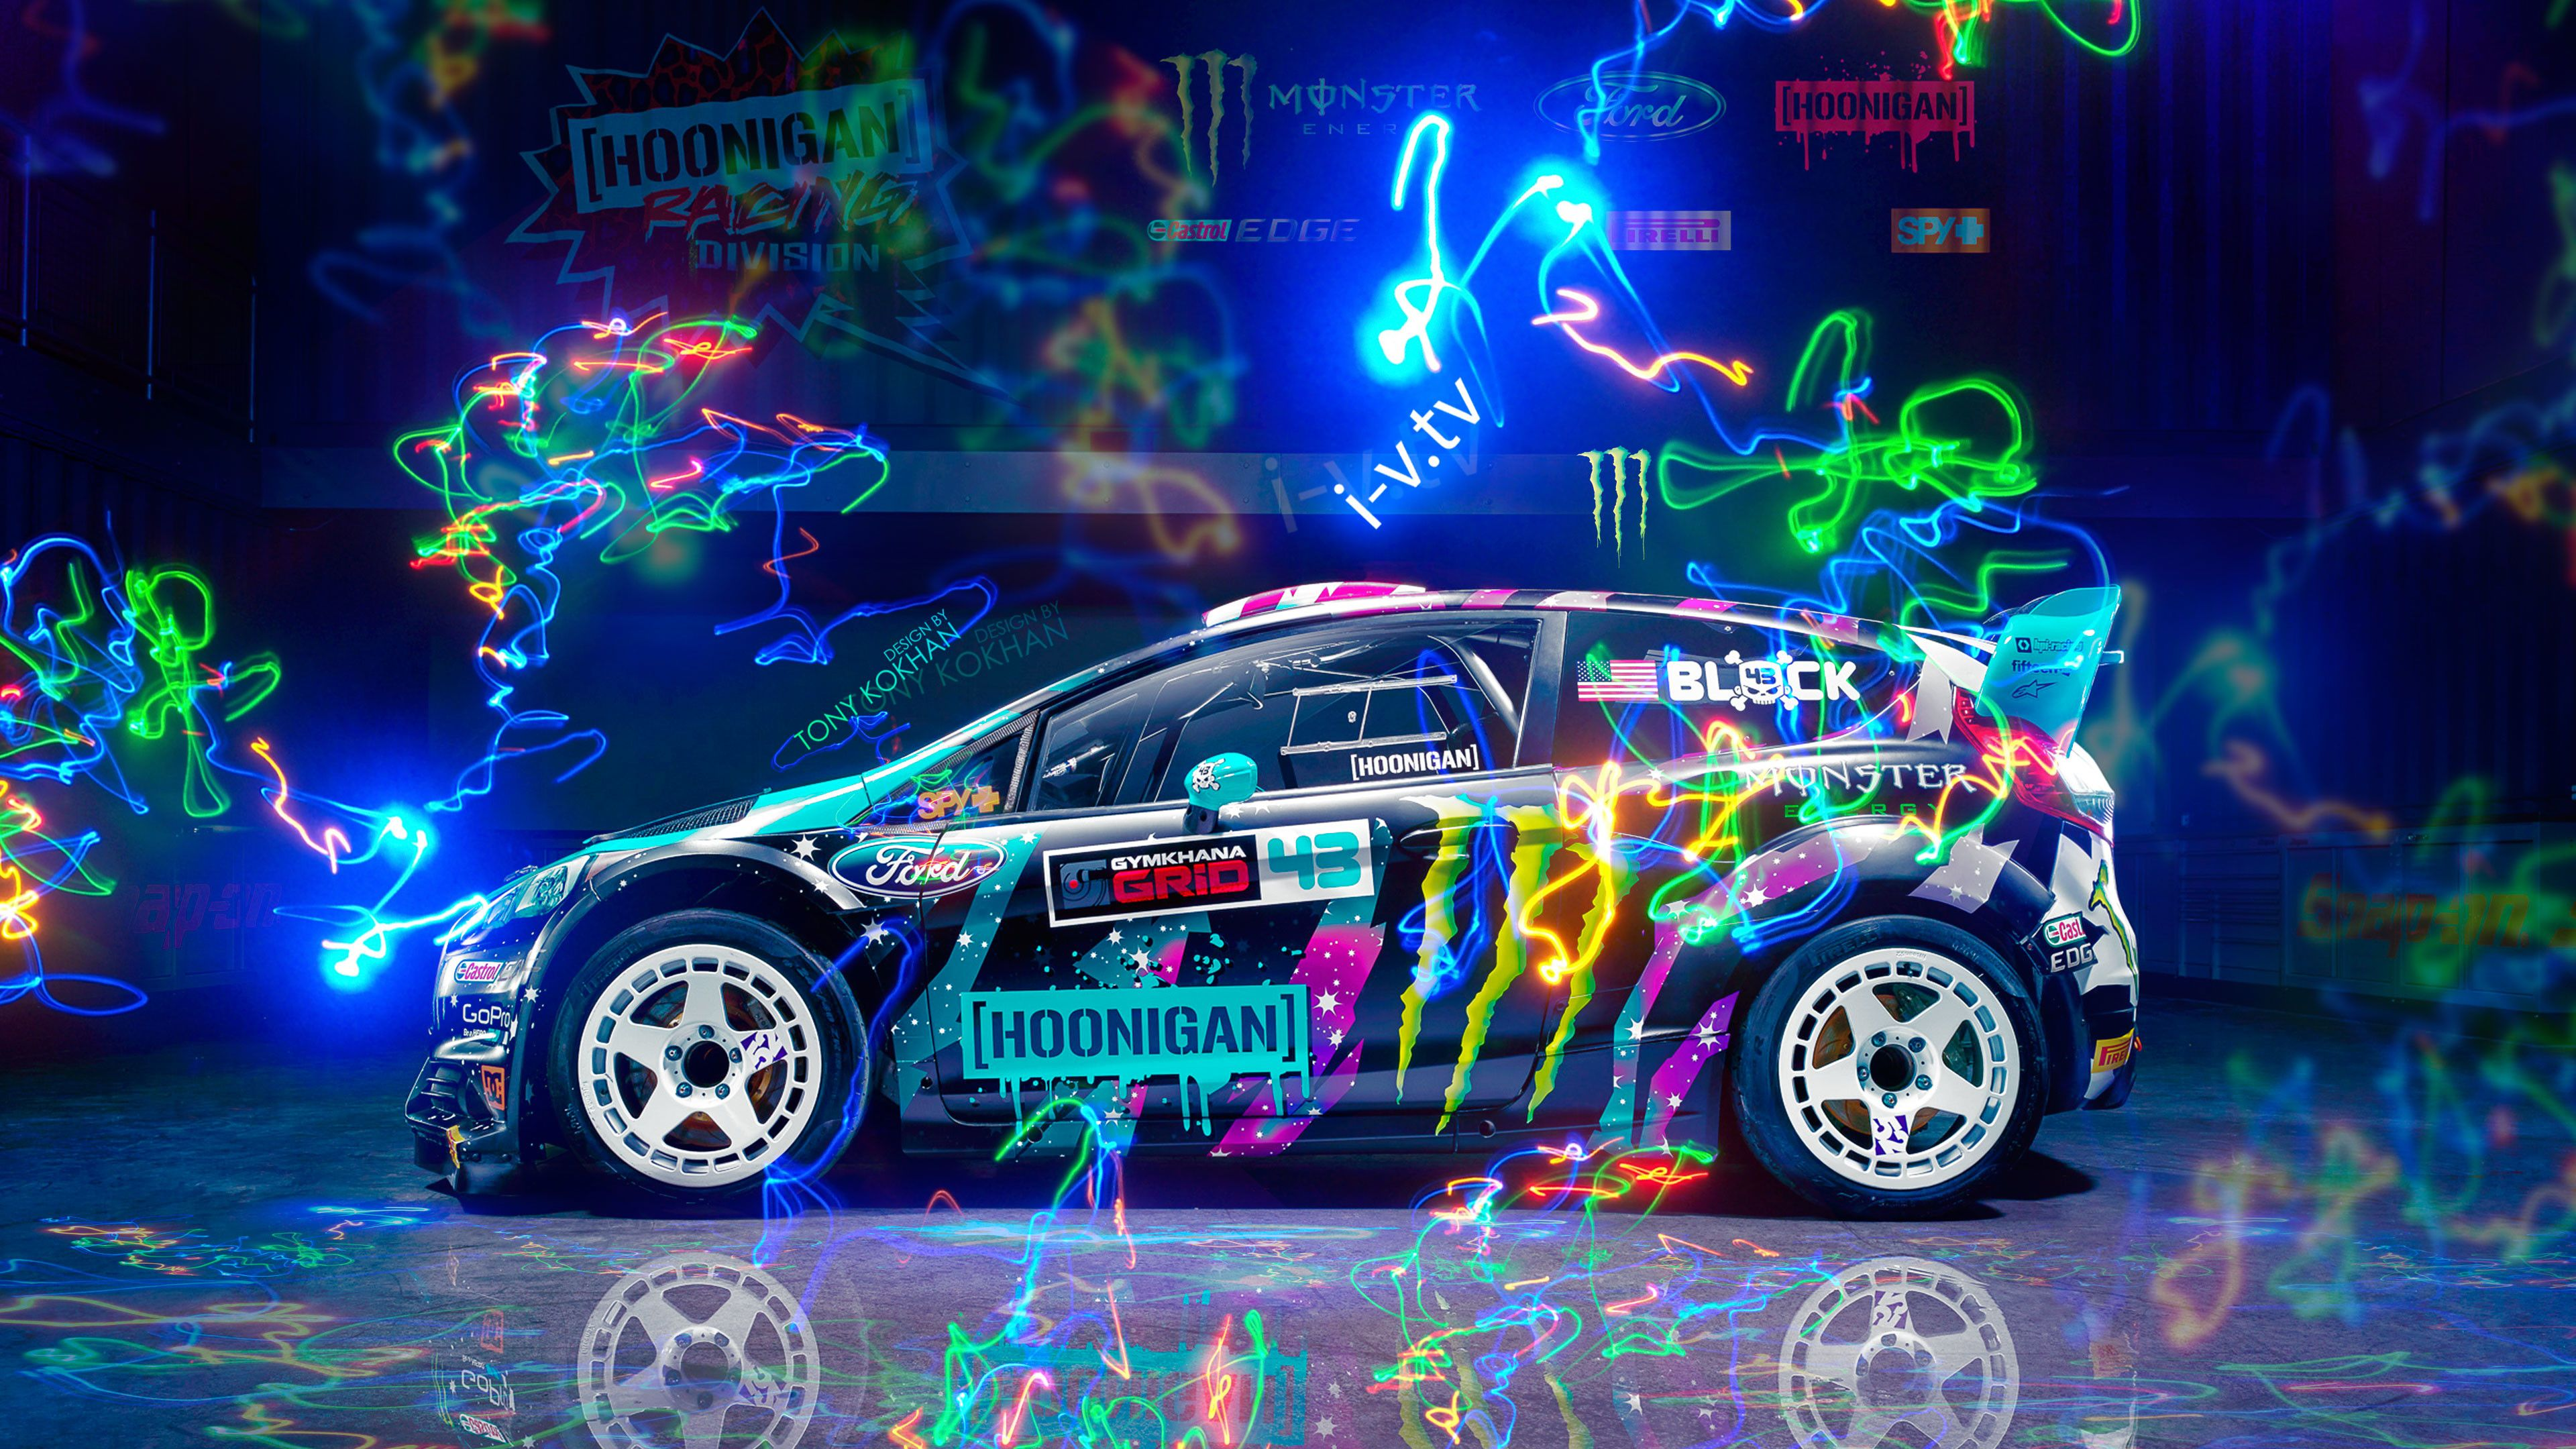 3840x2160 Ford Fiesta St Rx43 Super Energy Car 2015 Creative Wallpapers Cars Ford Fiesta Ford Custom Cars